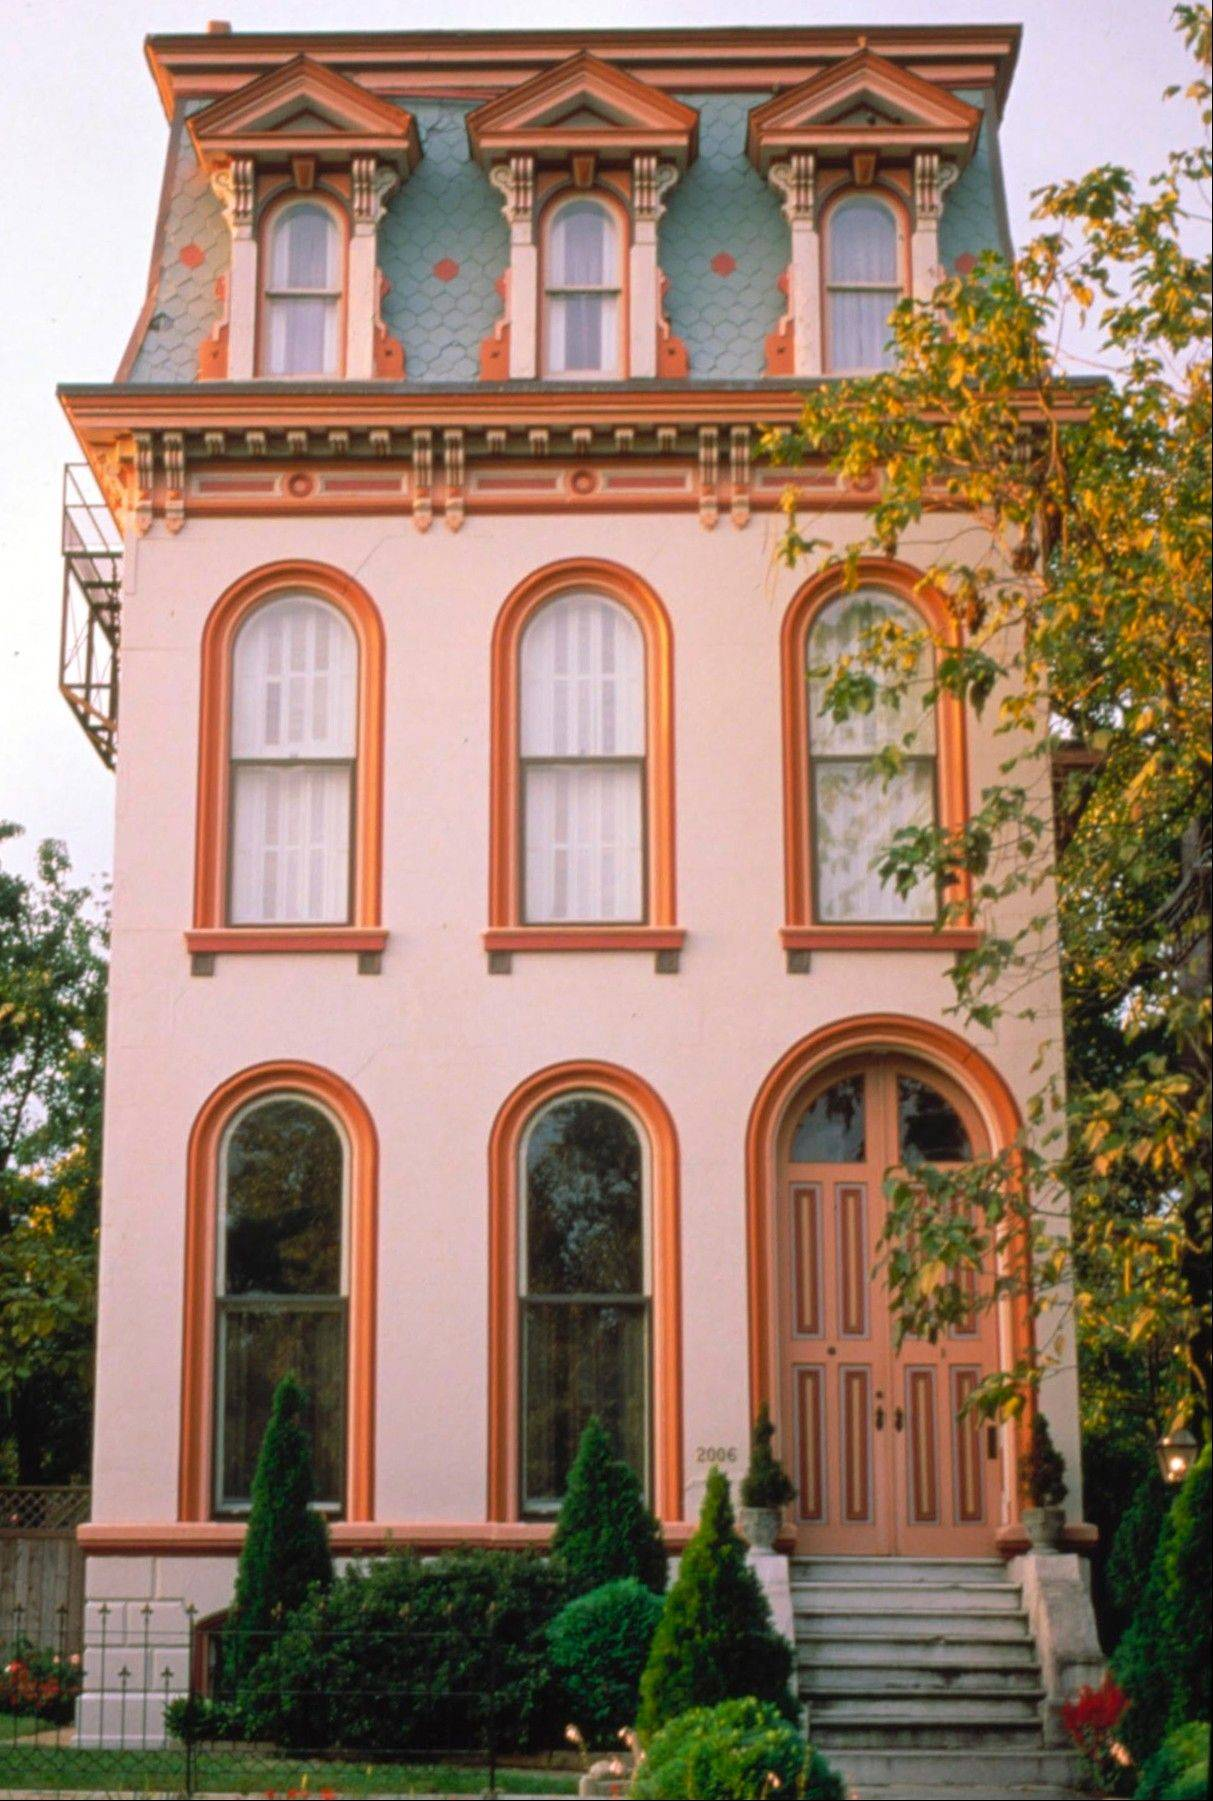 This St. Louis house is in Lafayette Square, an elegant urban neighborhood comprised of stately Victorian-era homes.